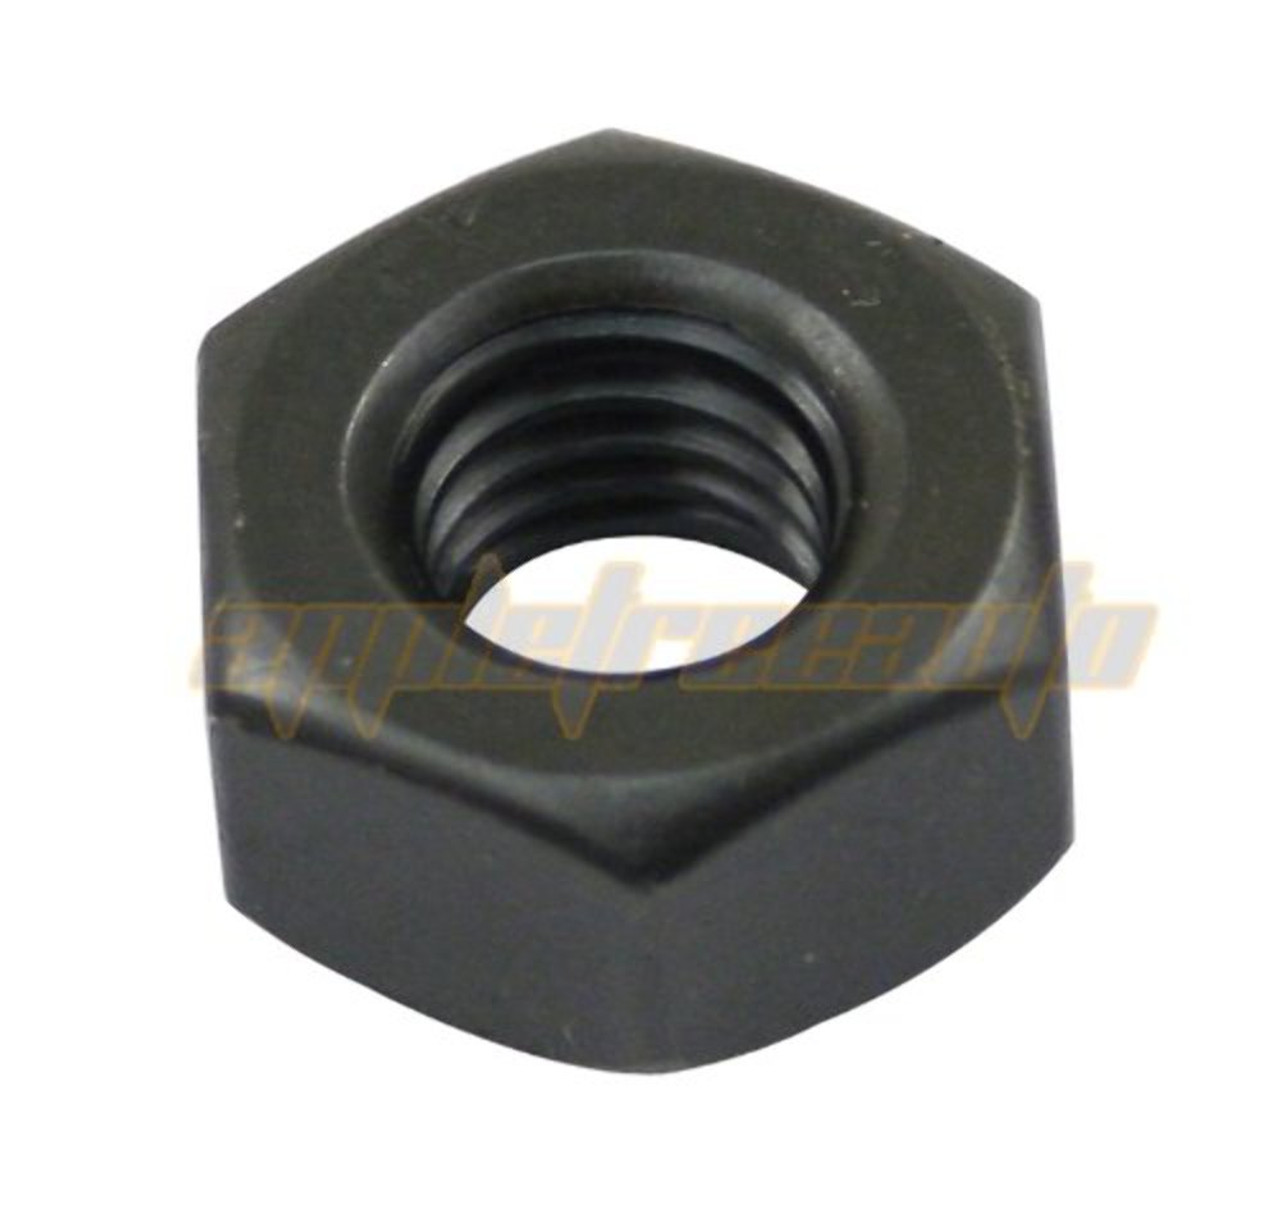 8MM CYLINDER HEAD NUT, dune buggy vw baja bug